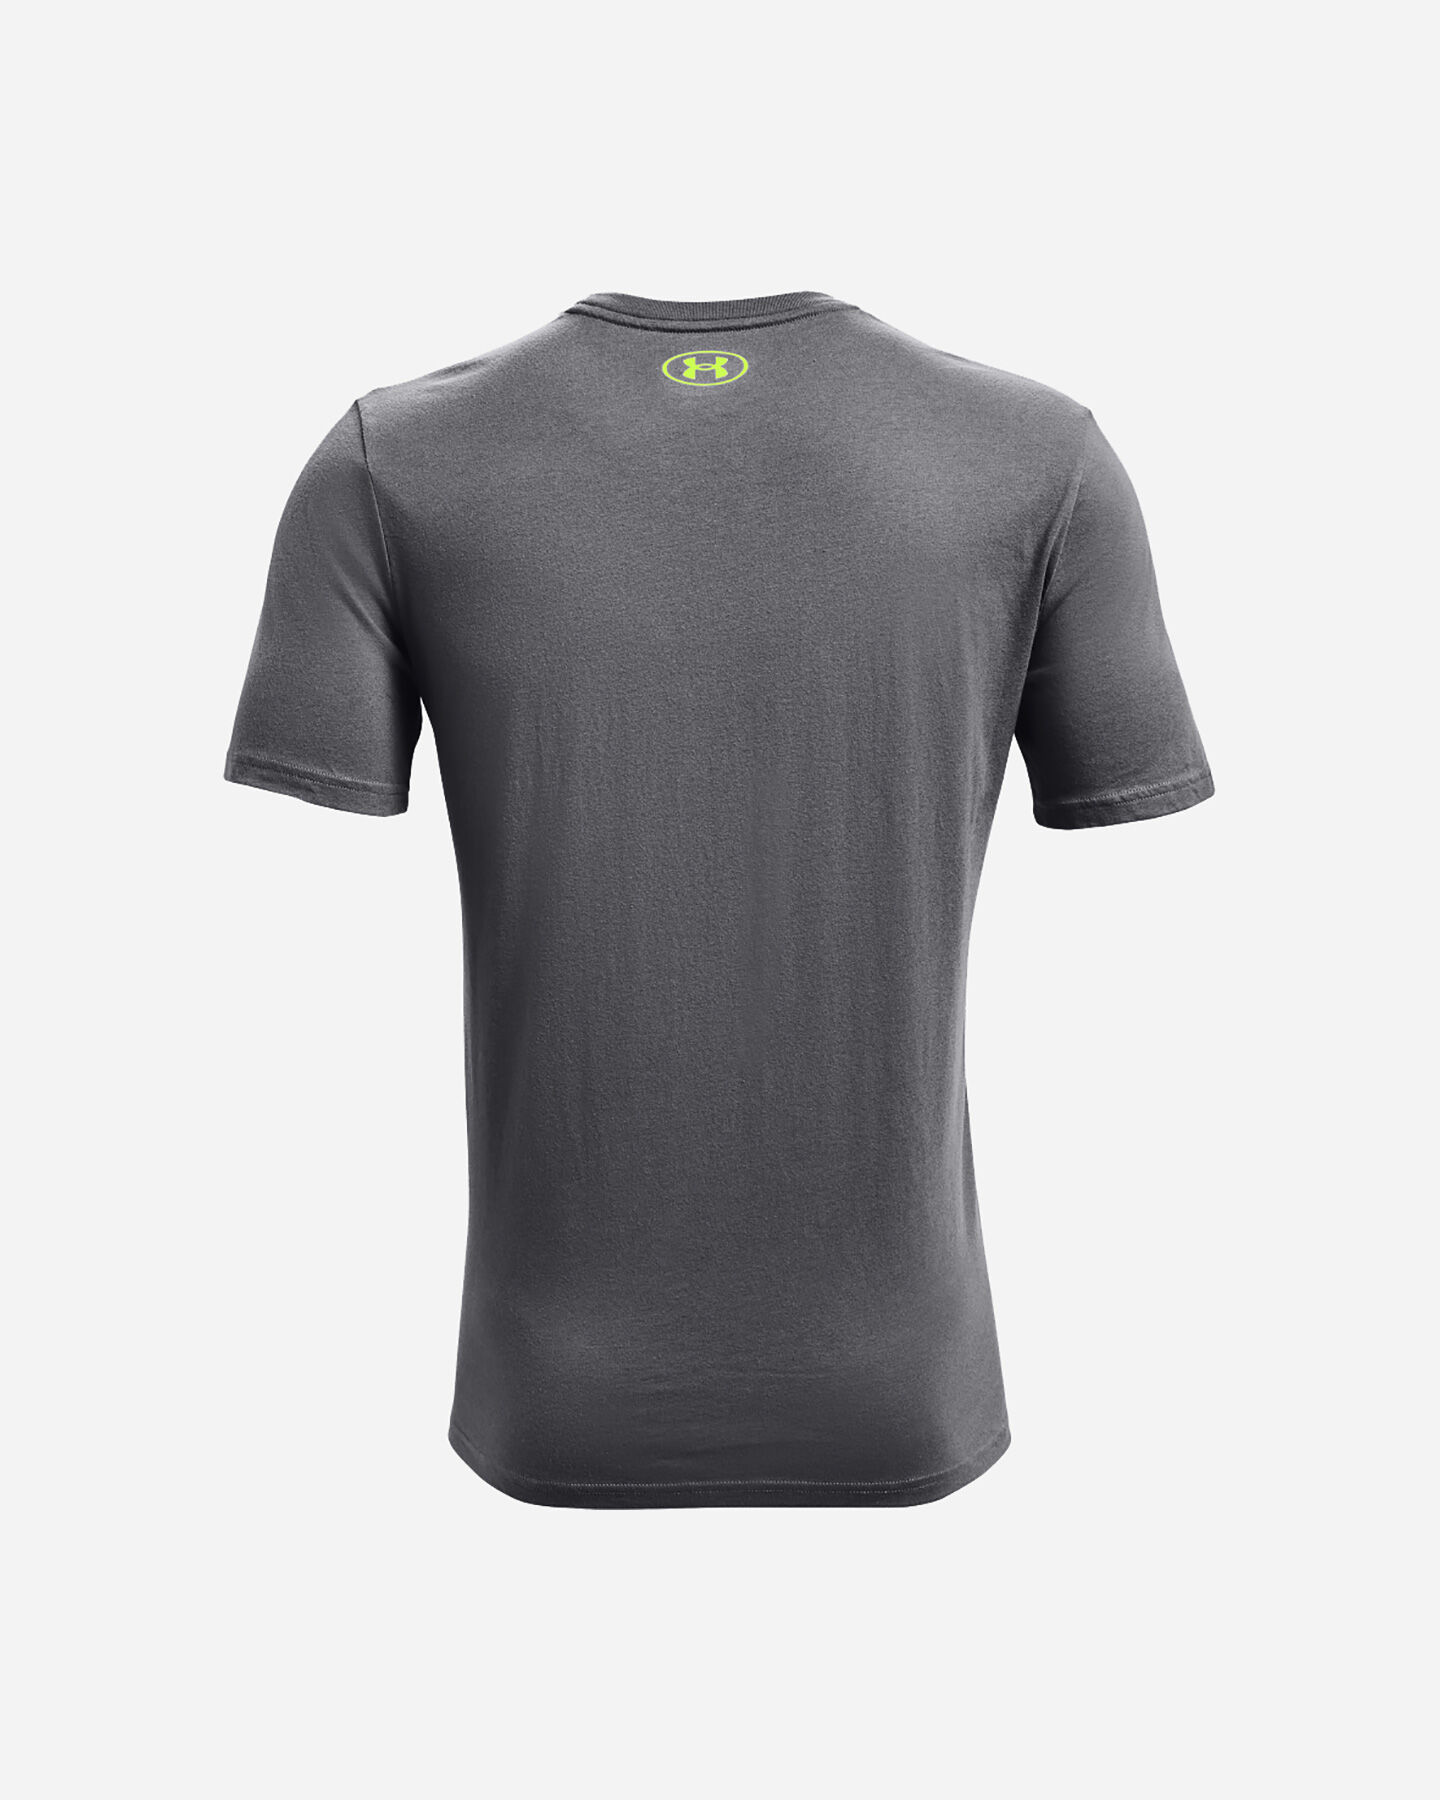 T-Shirt UNDER ARMOUR THE ROCK BULL LOGO M S5300568 scatto 1